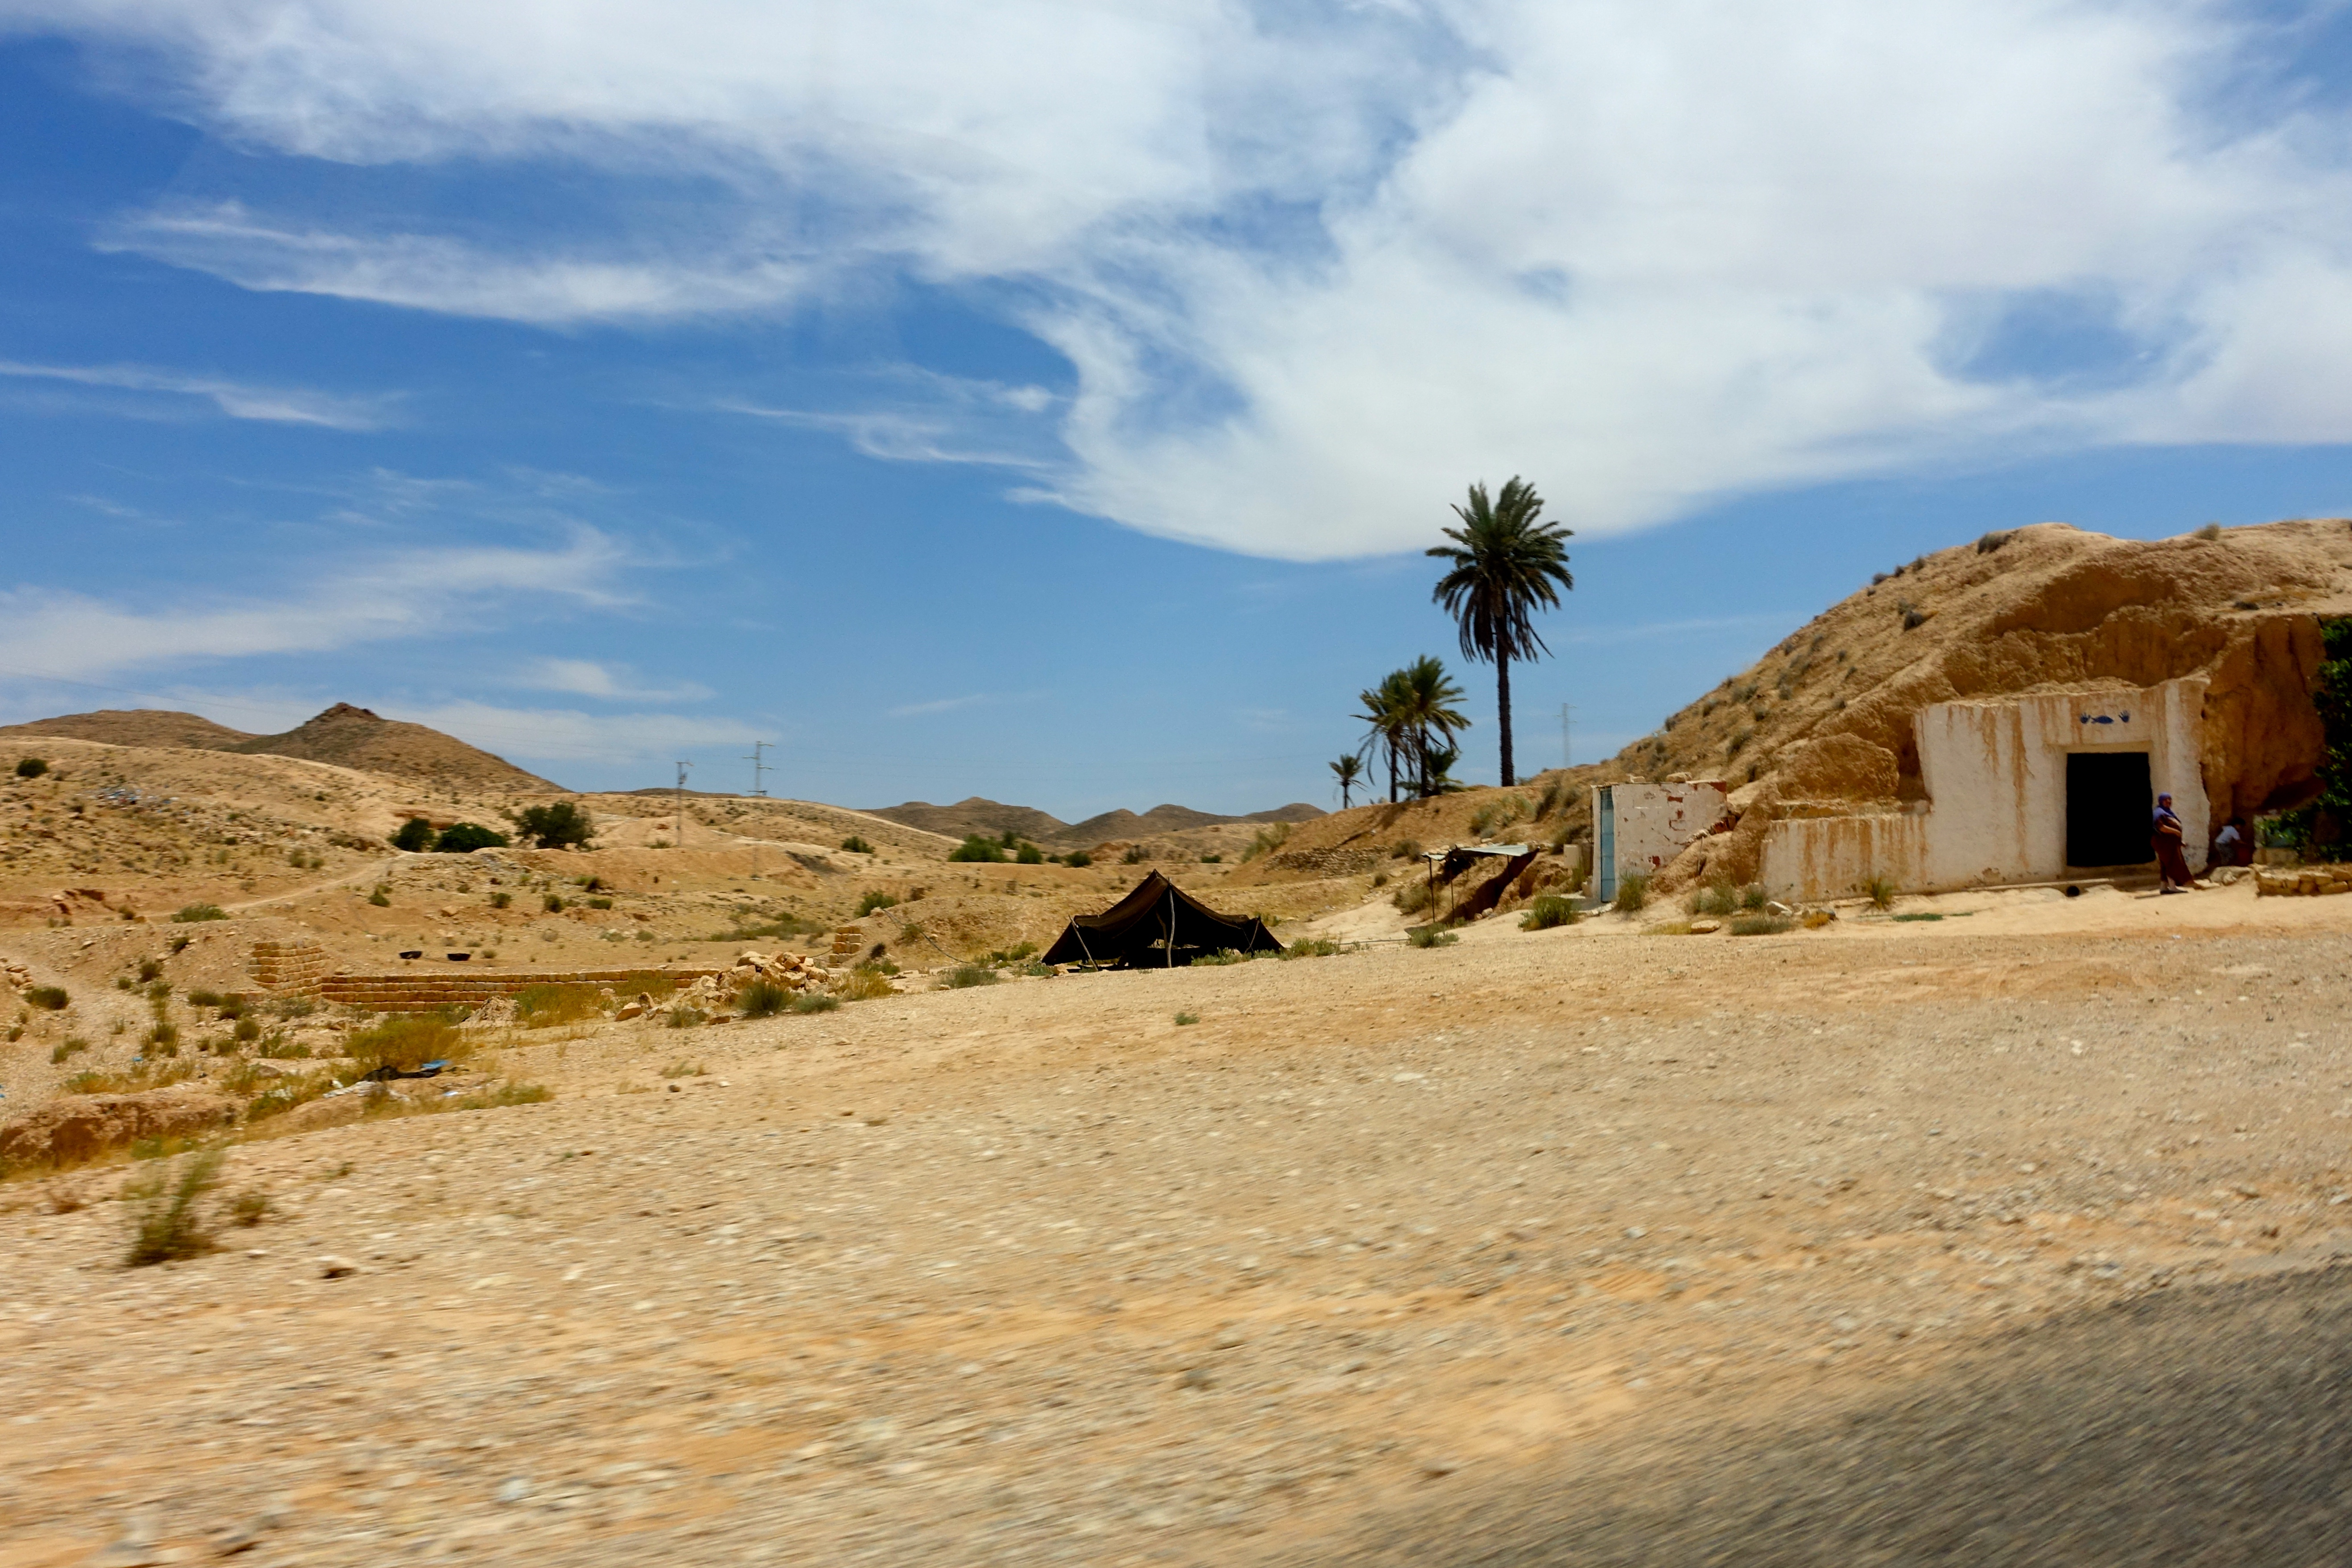 Wise man built his house upon the rock sermon - Houses Built In Rock Tunisia 2